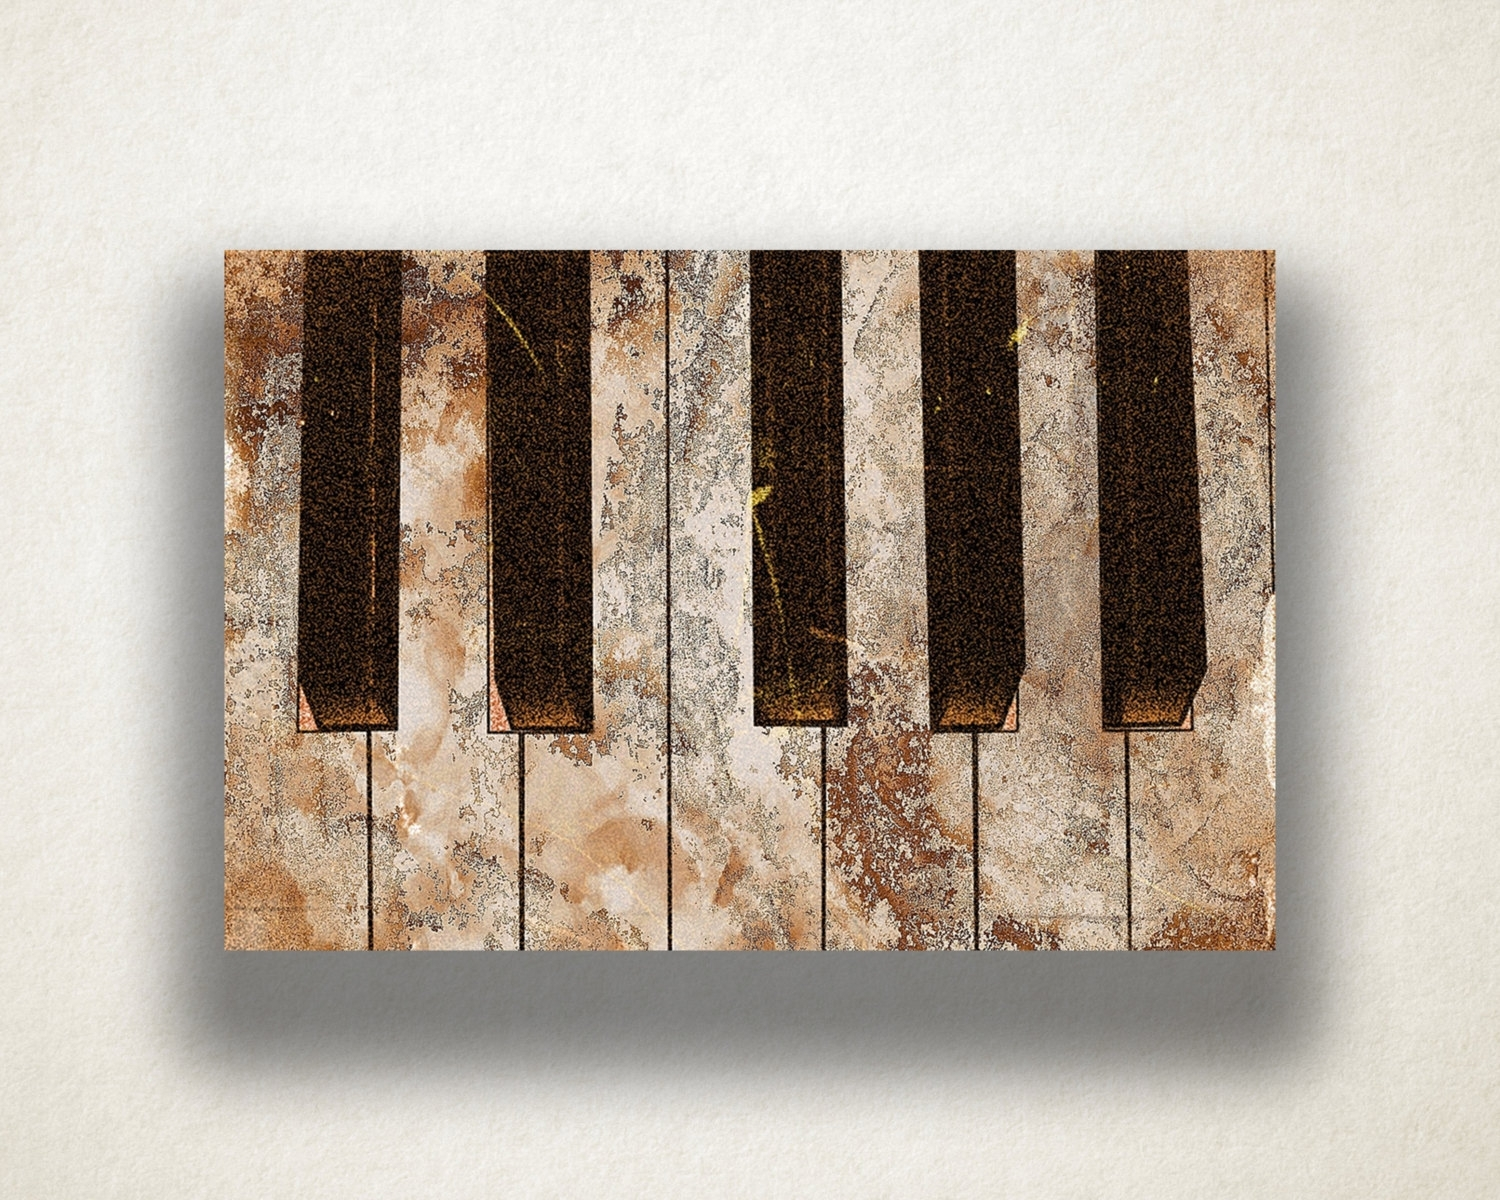 Piano Painting Canvas Art Print, Piano Keys Wall Art, Music Canvas Throughout Latest Music Canvas Wall Art (View 12 of 15)